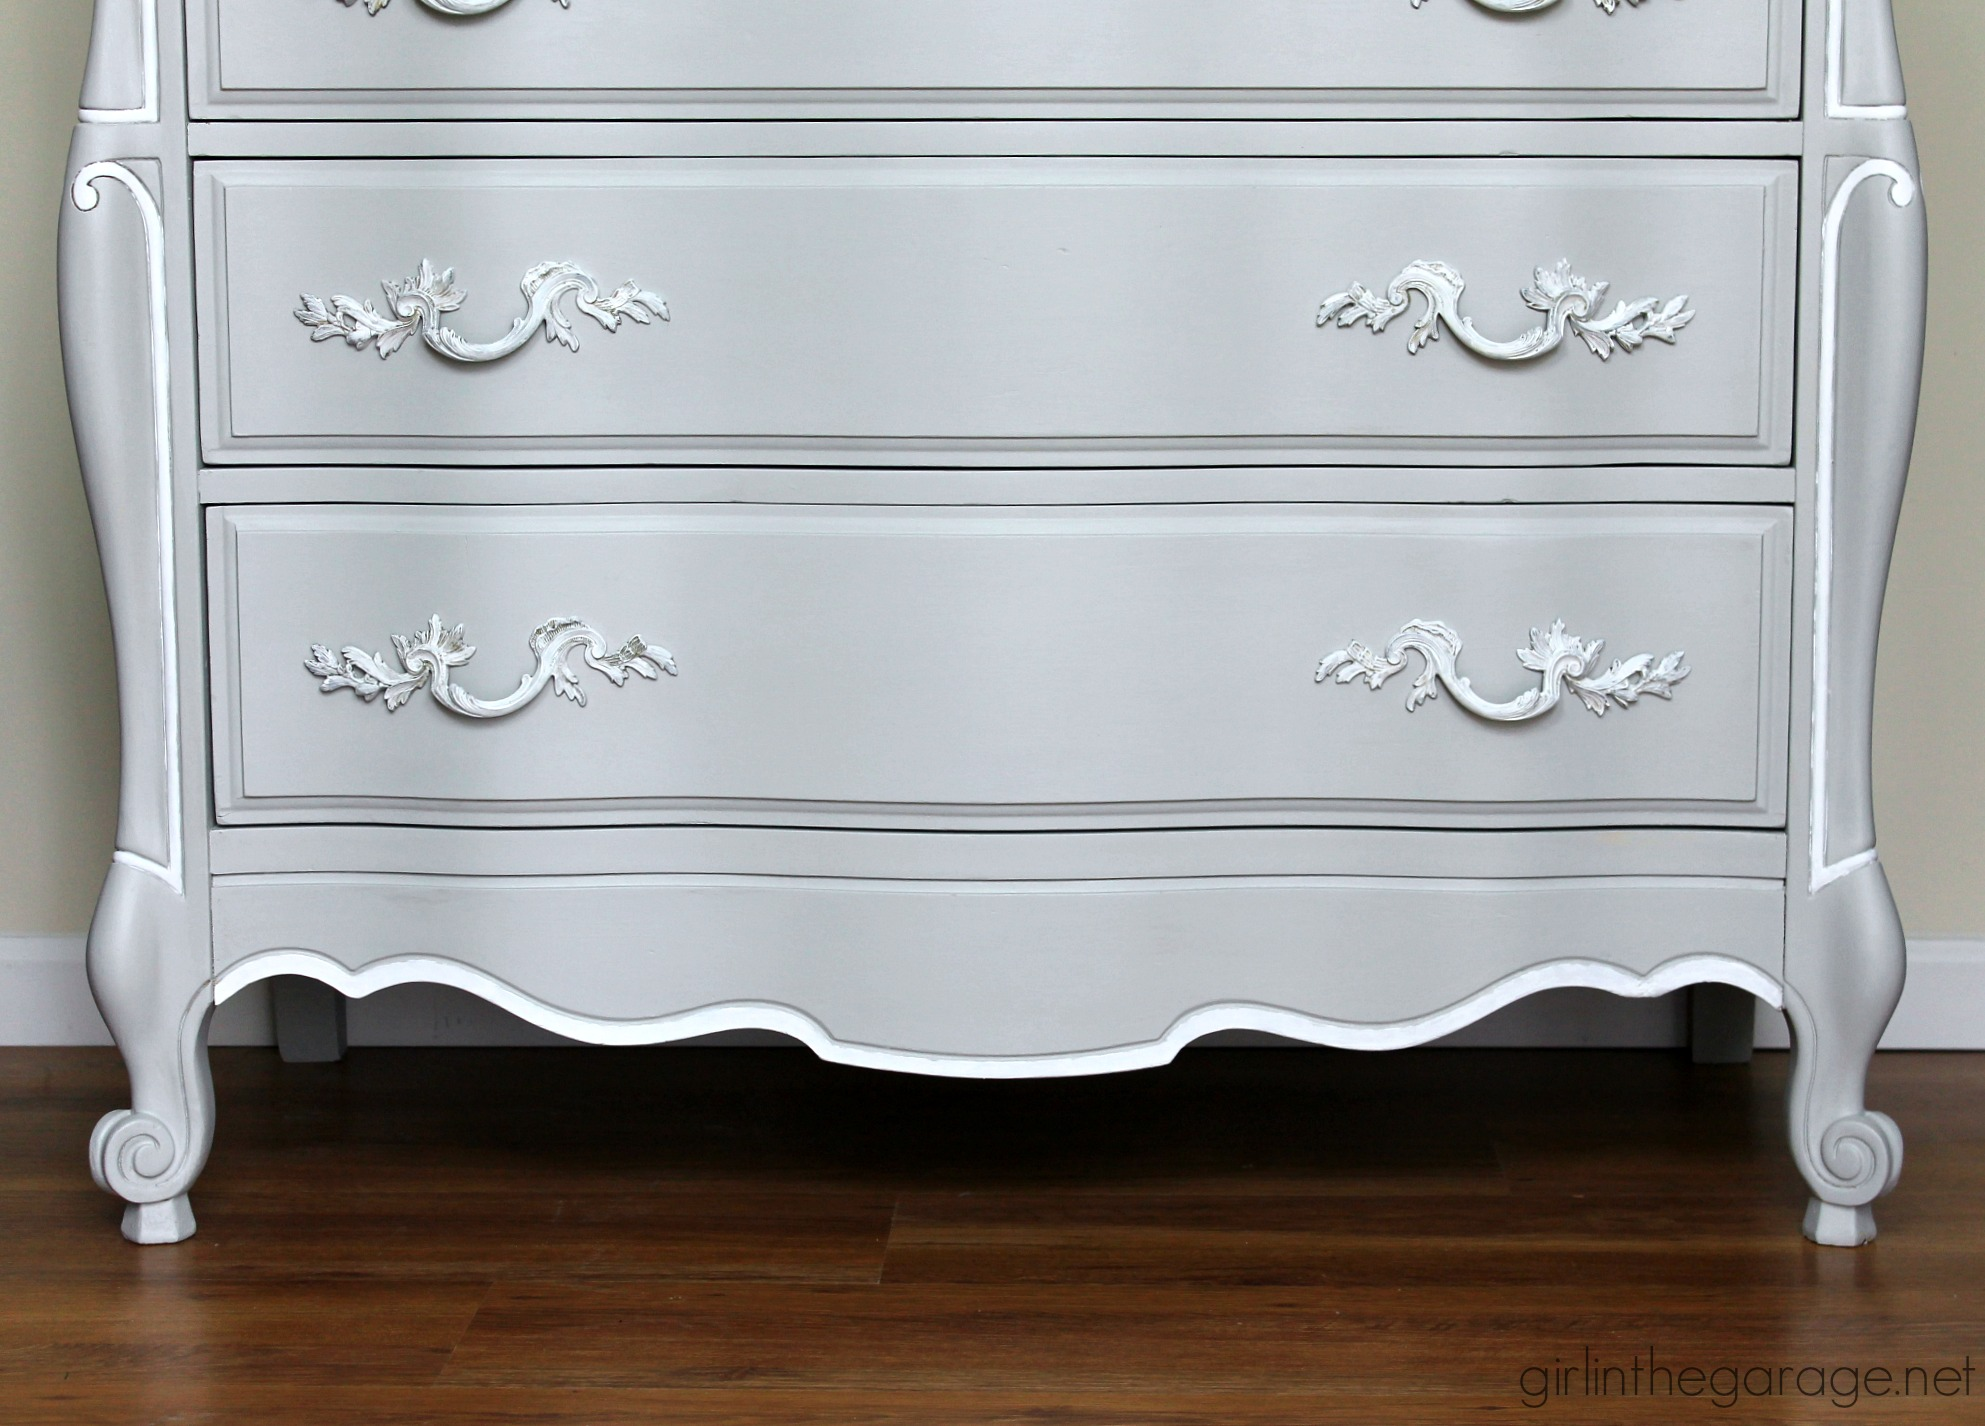 Glamorous French Provincial Dresser Makeover In Fusion Mineral Paint By The Garage